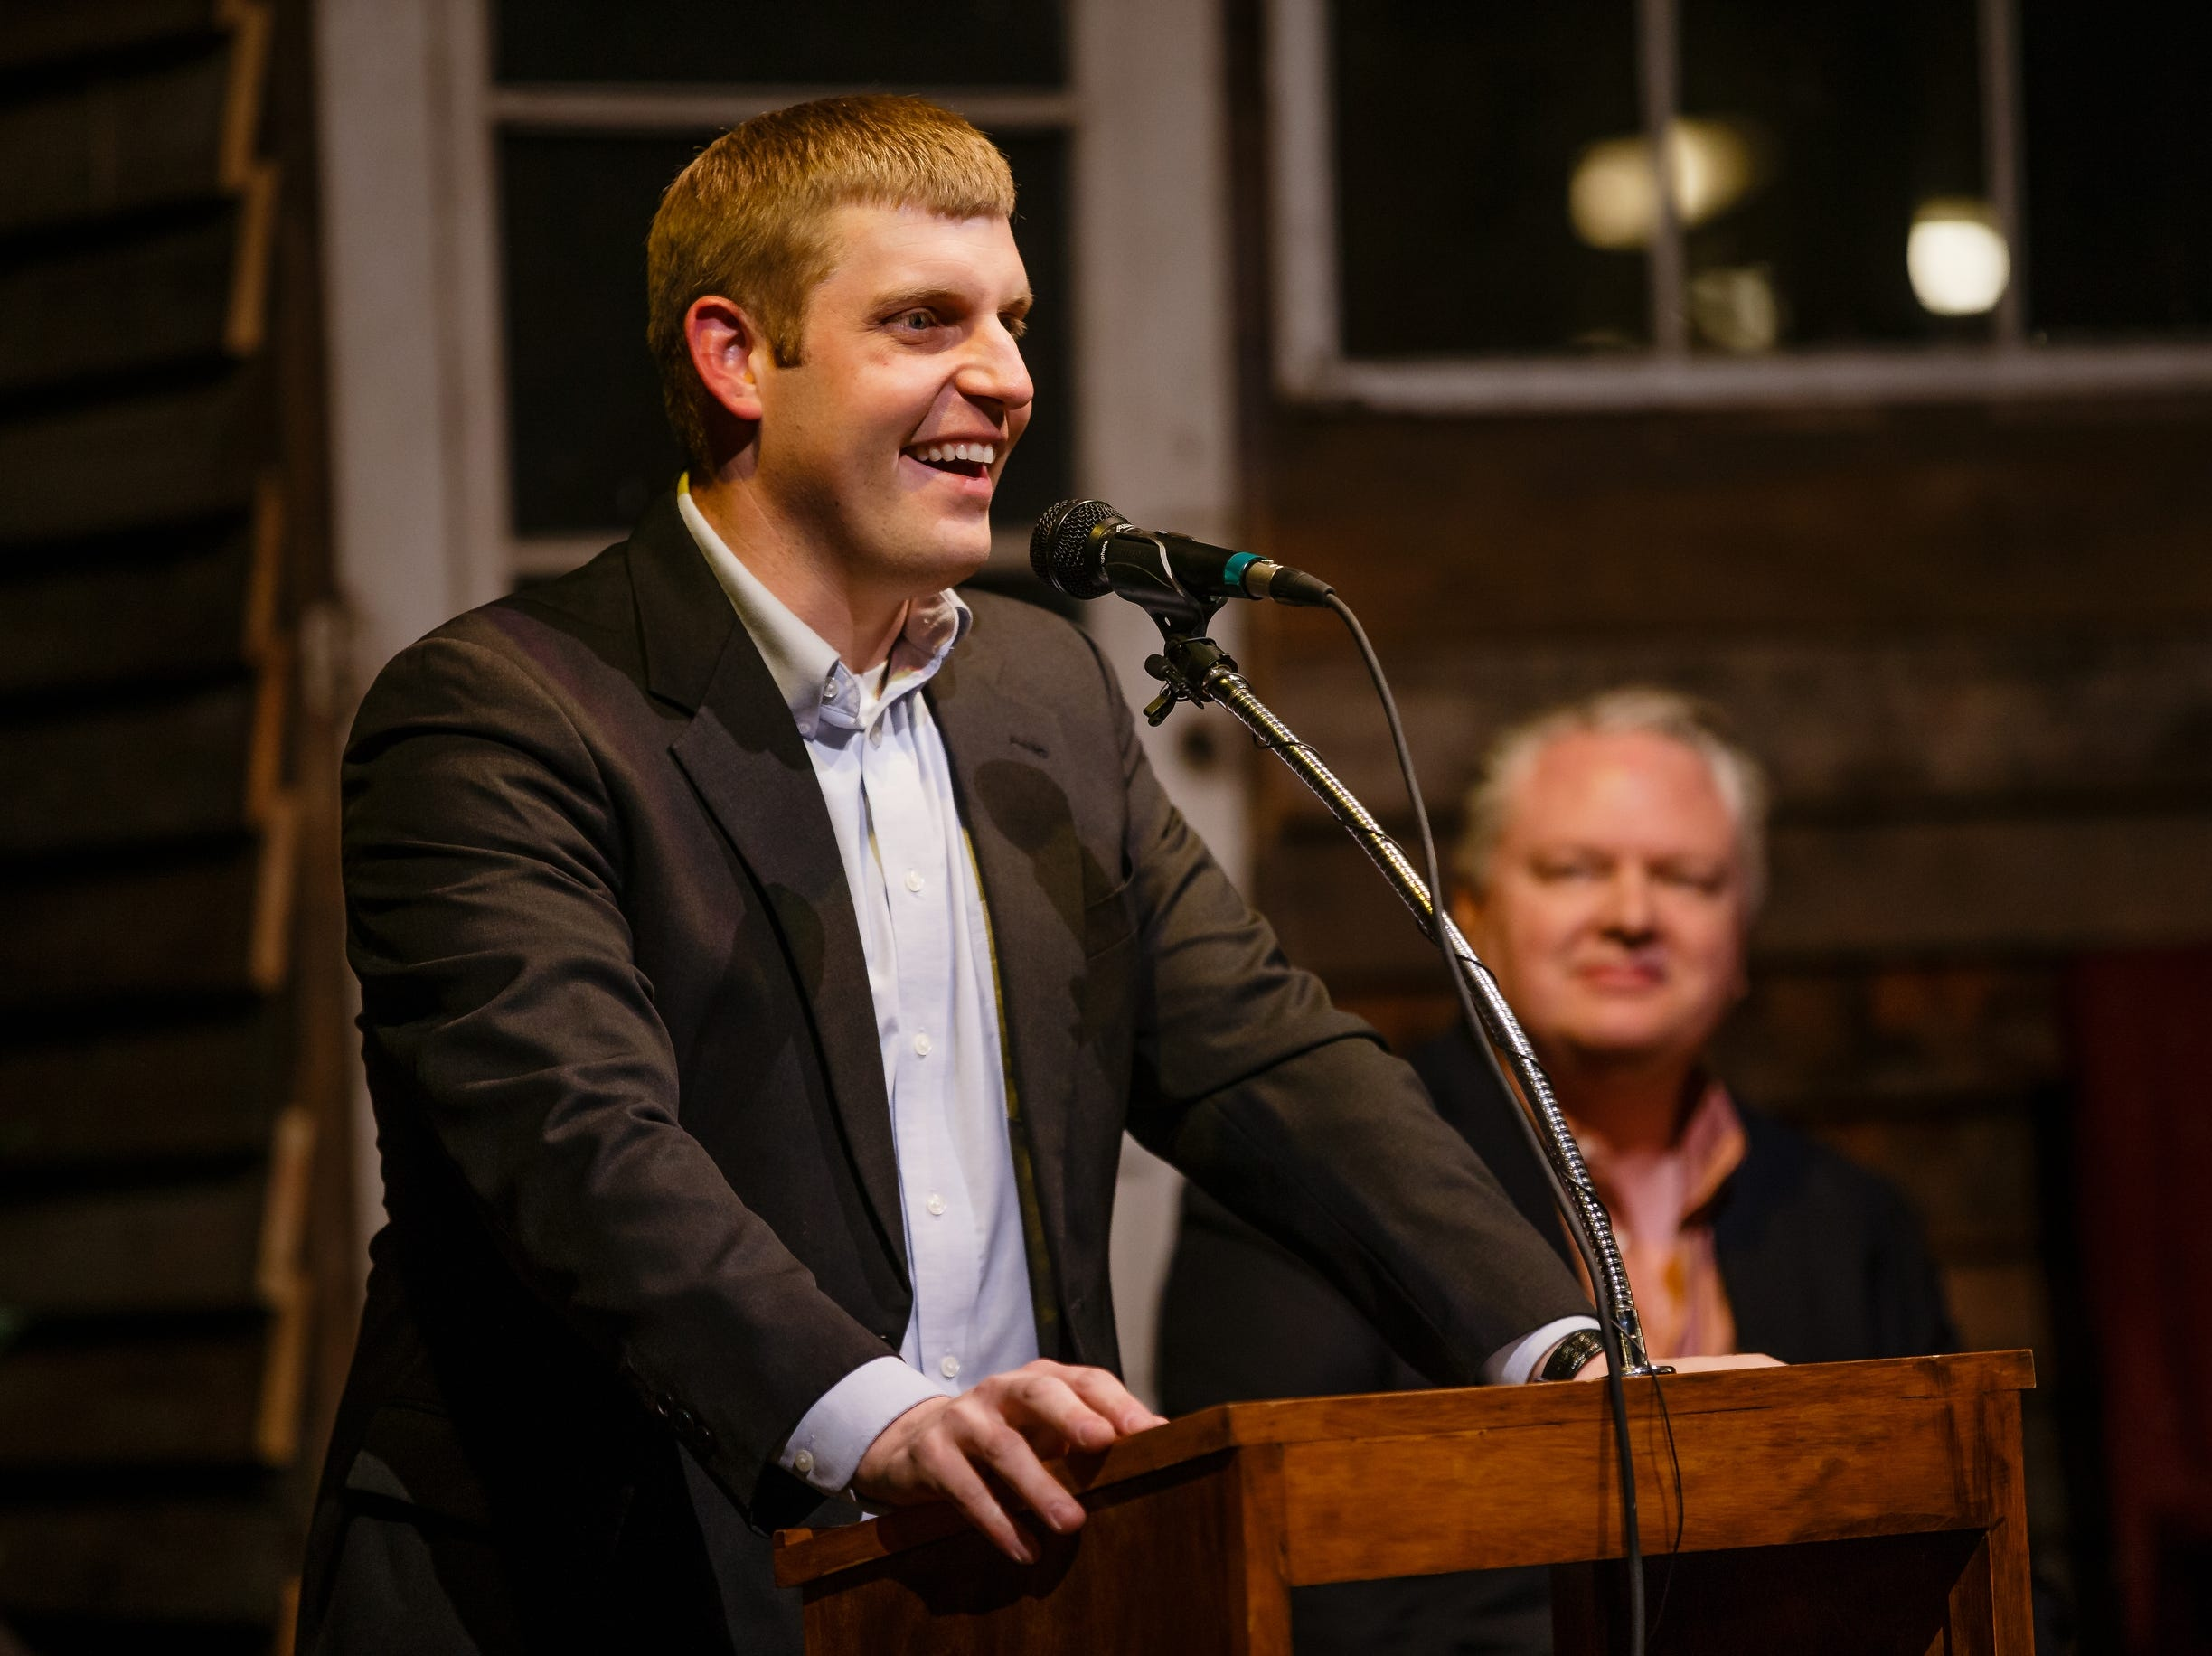 Mechanical Engineer and Jefferson business owner Chris Deal speaks to a crowd at the History Boy Theater on Saturday, Dec. 8, 2018, in Jefferson. The event was to announce Pillar's partnerships with Silicon Valley leaders in an effort to bring rural jobs to Iowa.